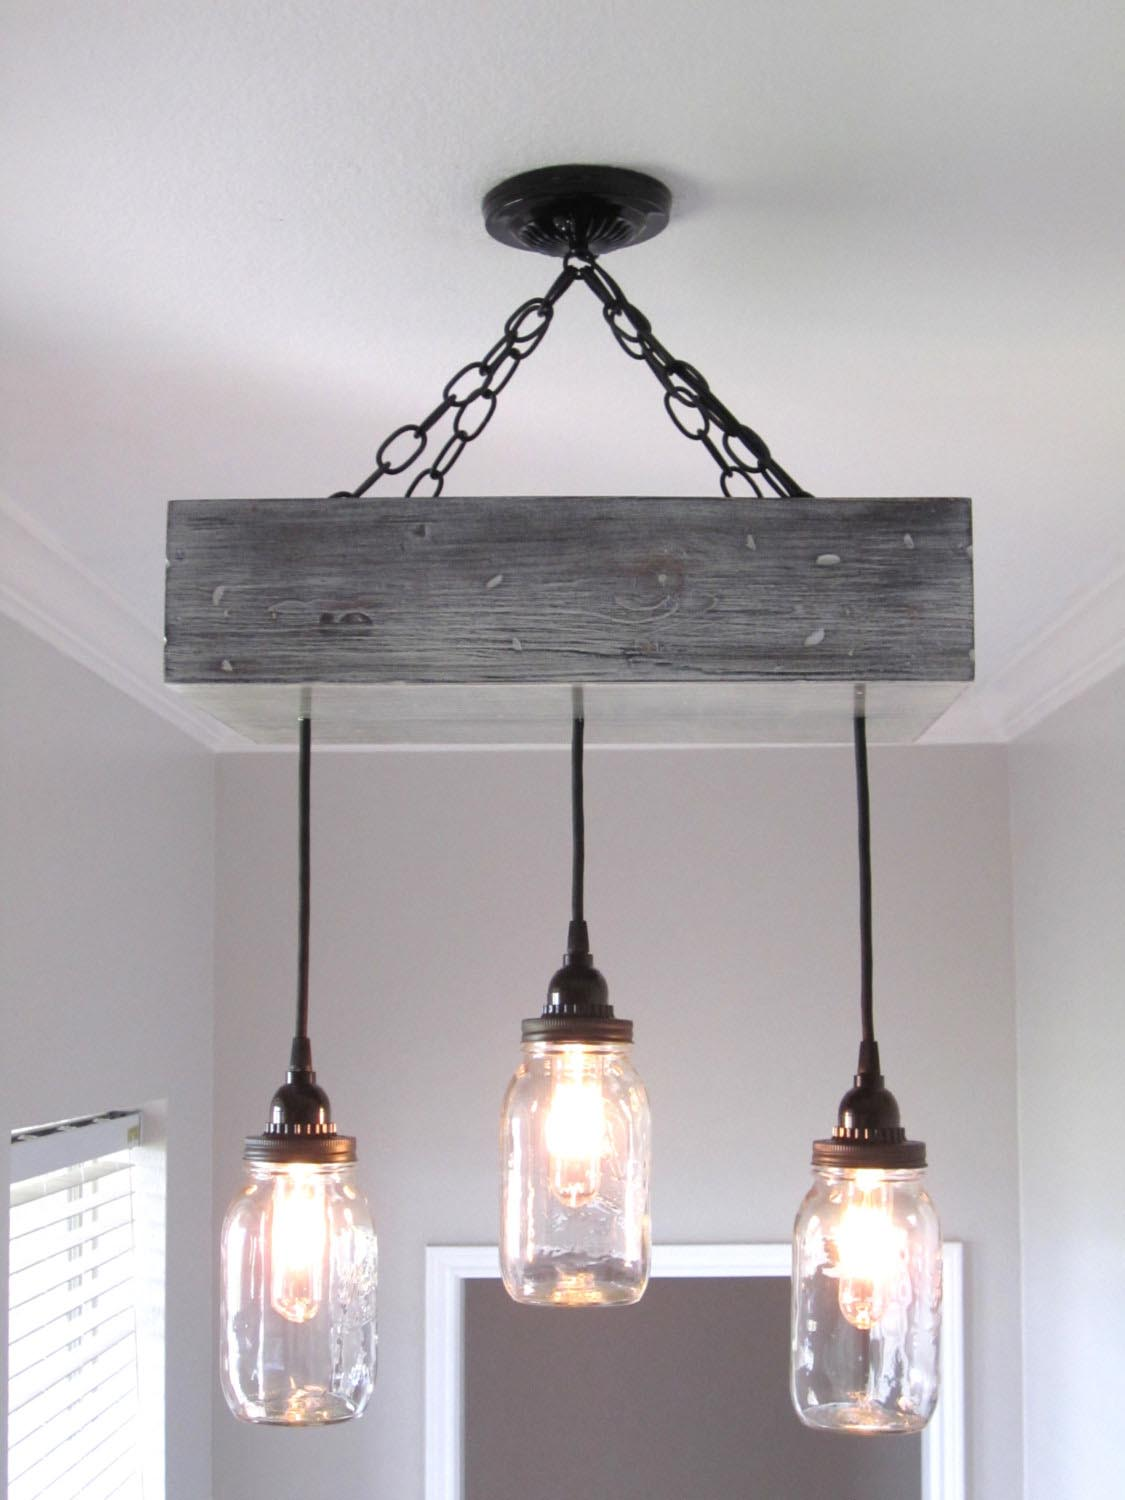 farmhouse ceiling light fixtures light fixtures design ideas. Black Bedroom Furniture Sets. Home Design Ideas